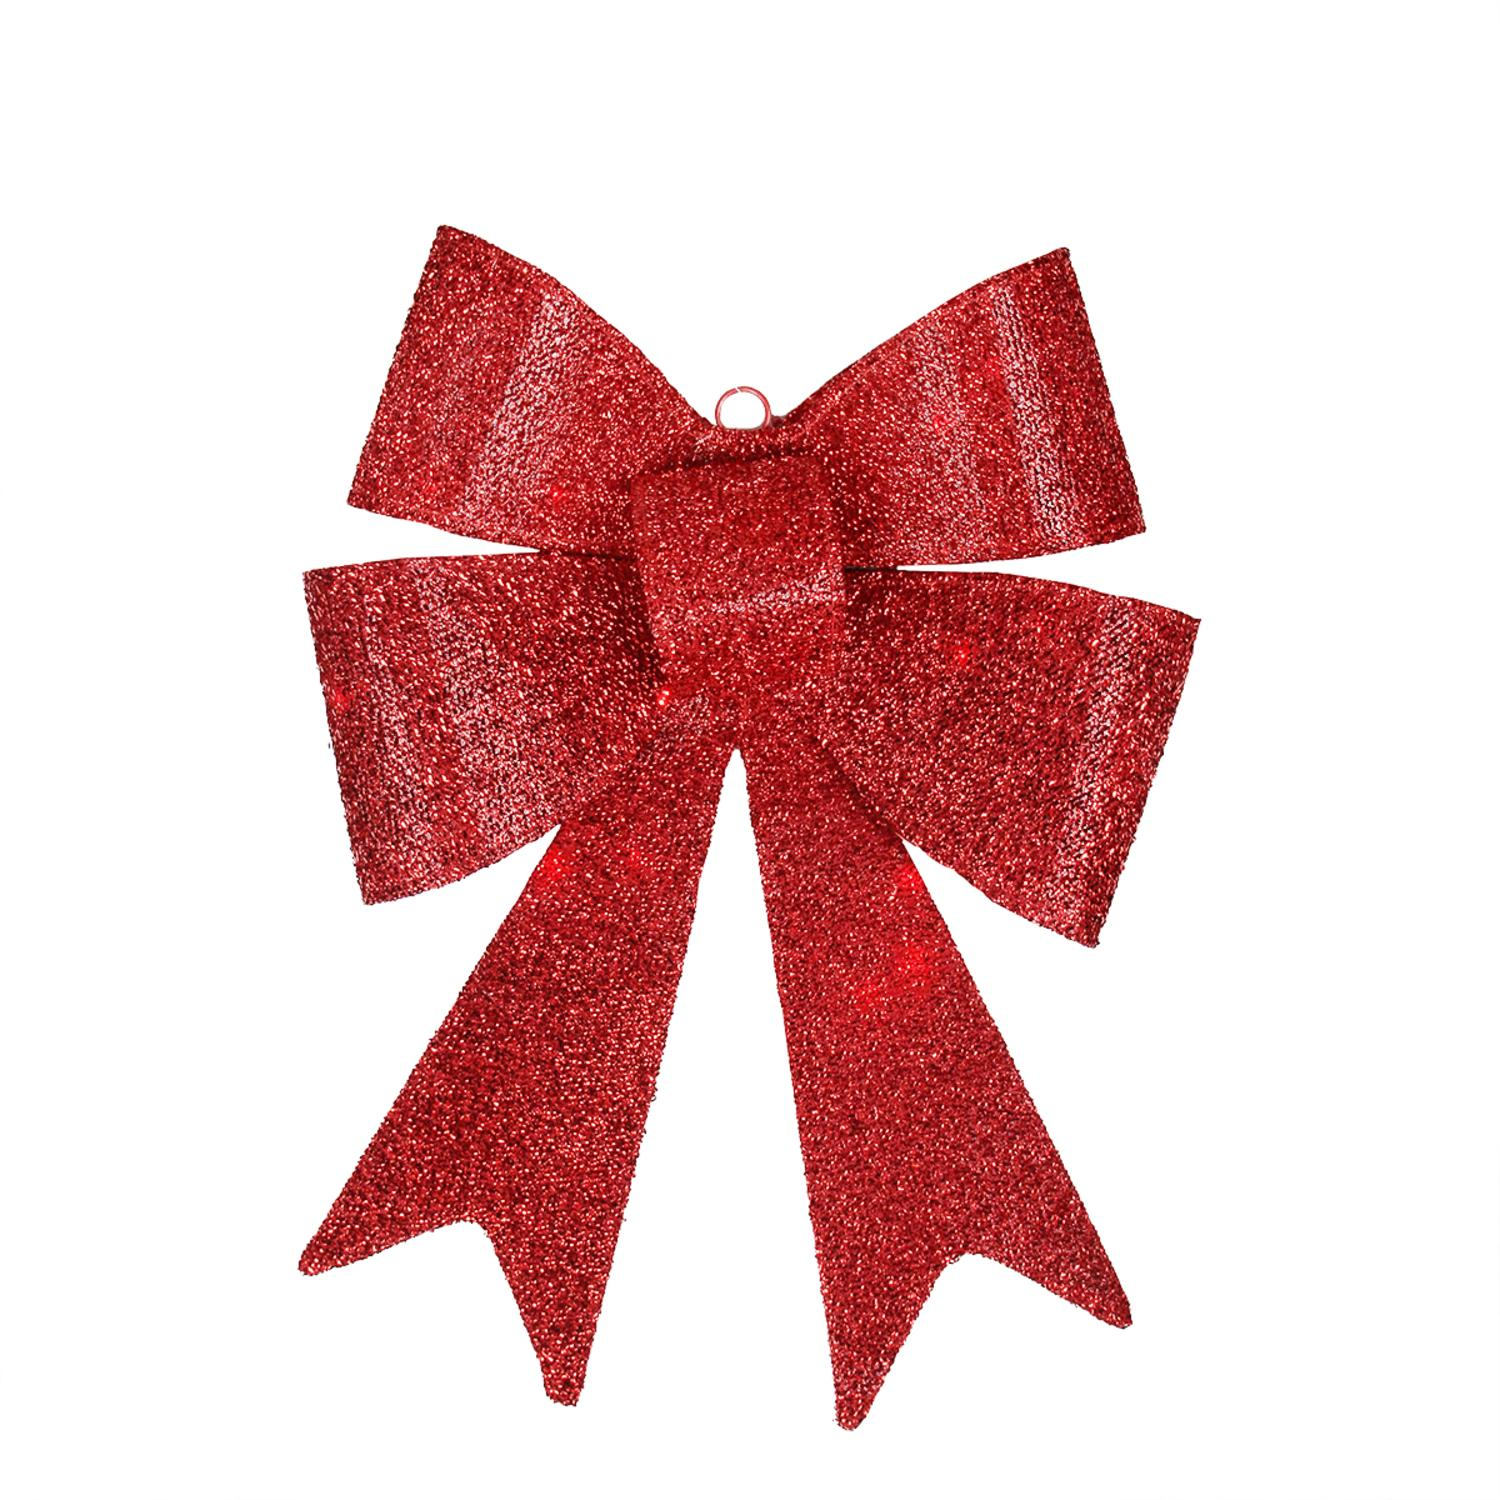 "17"" LED Lighted Battery Operated Vibrant Red Bow Christmas Decoration - Warm Clear Lights"